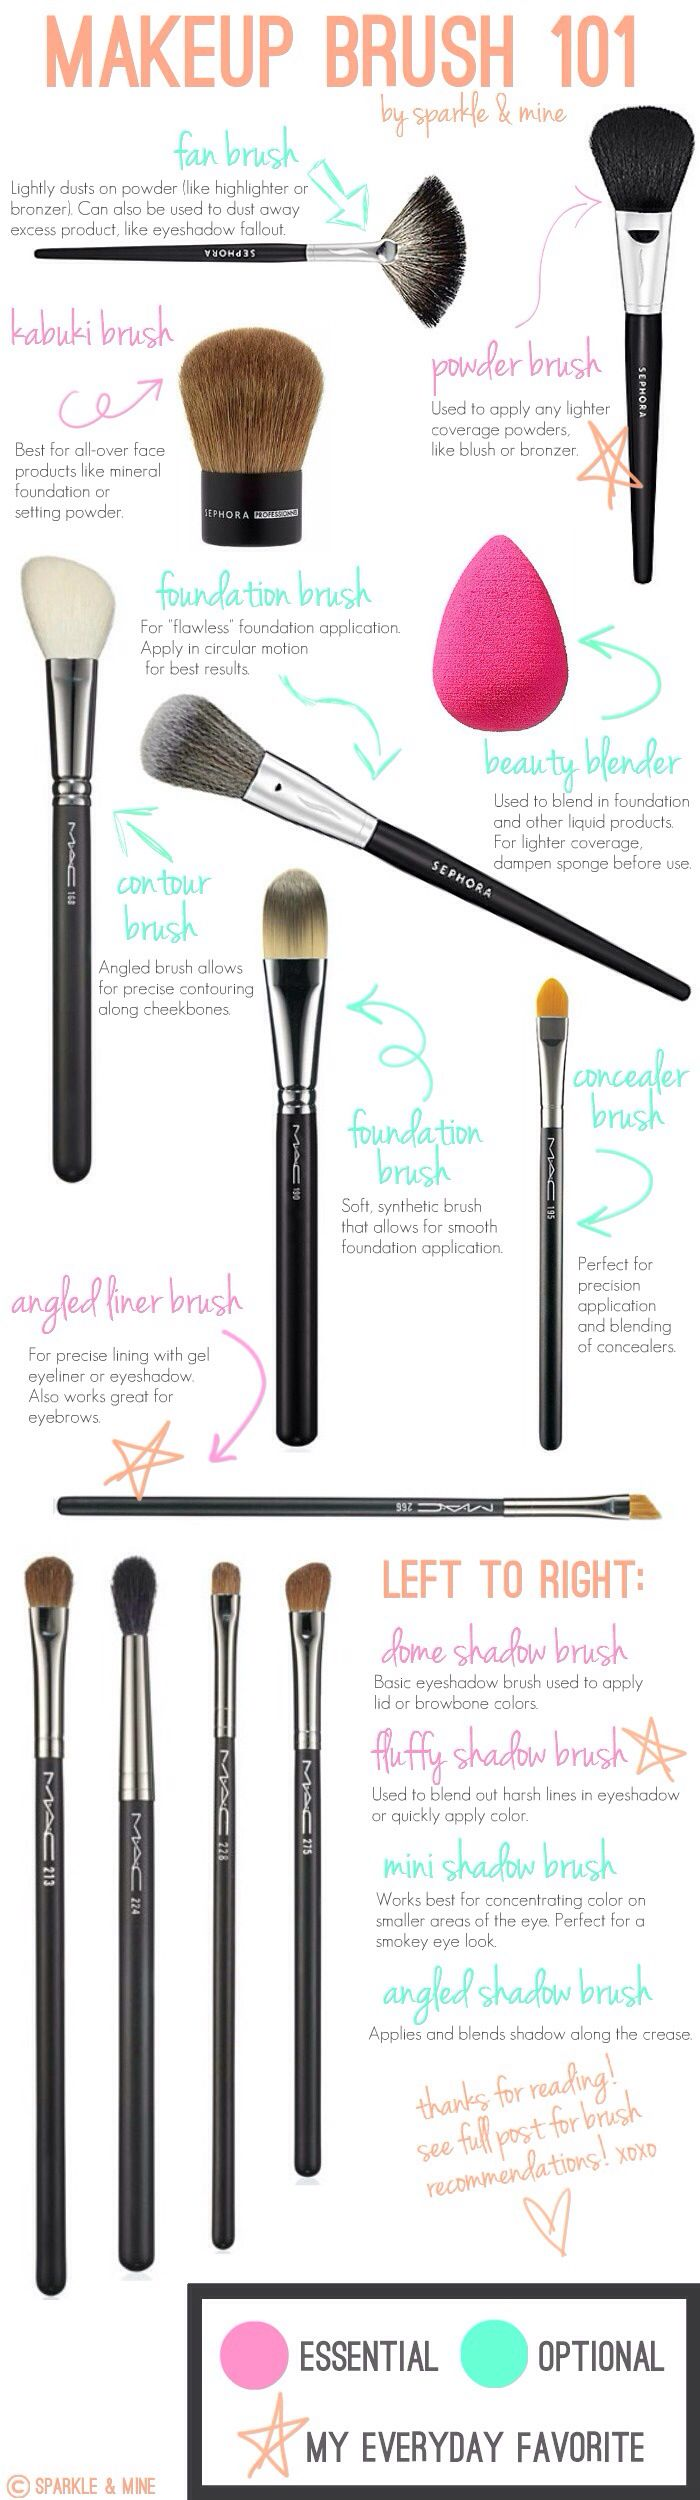 Makeup lessons - Brushes 101 | Luxurydotcom